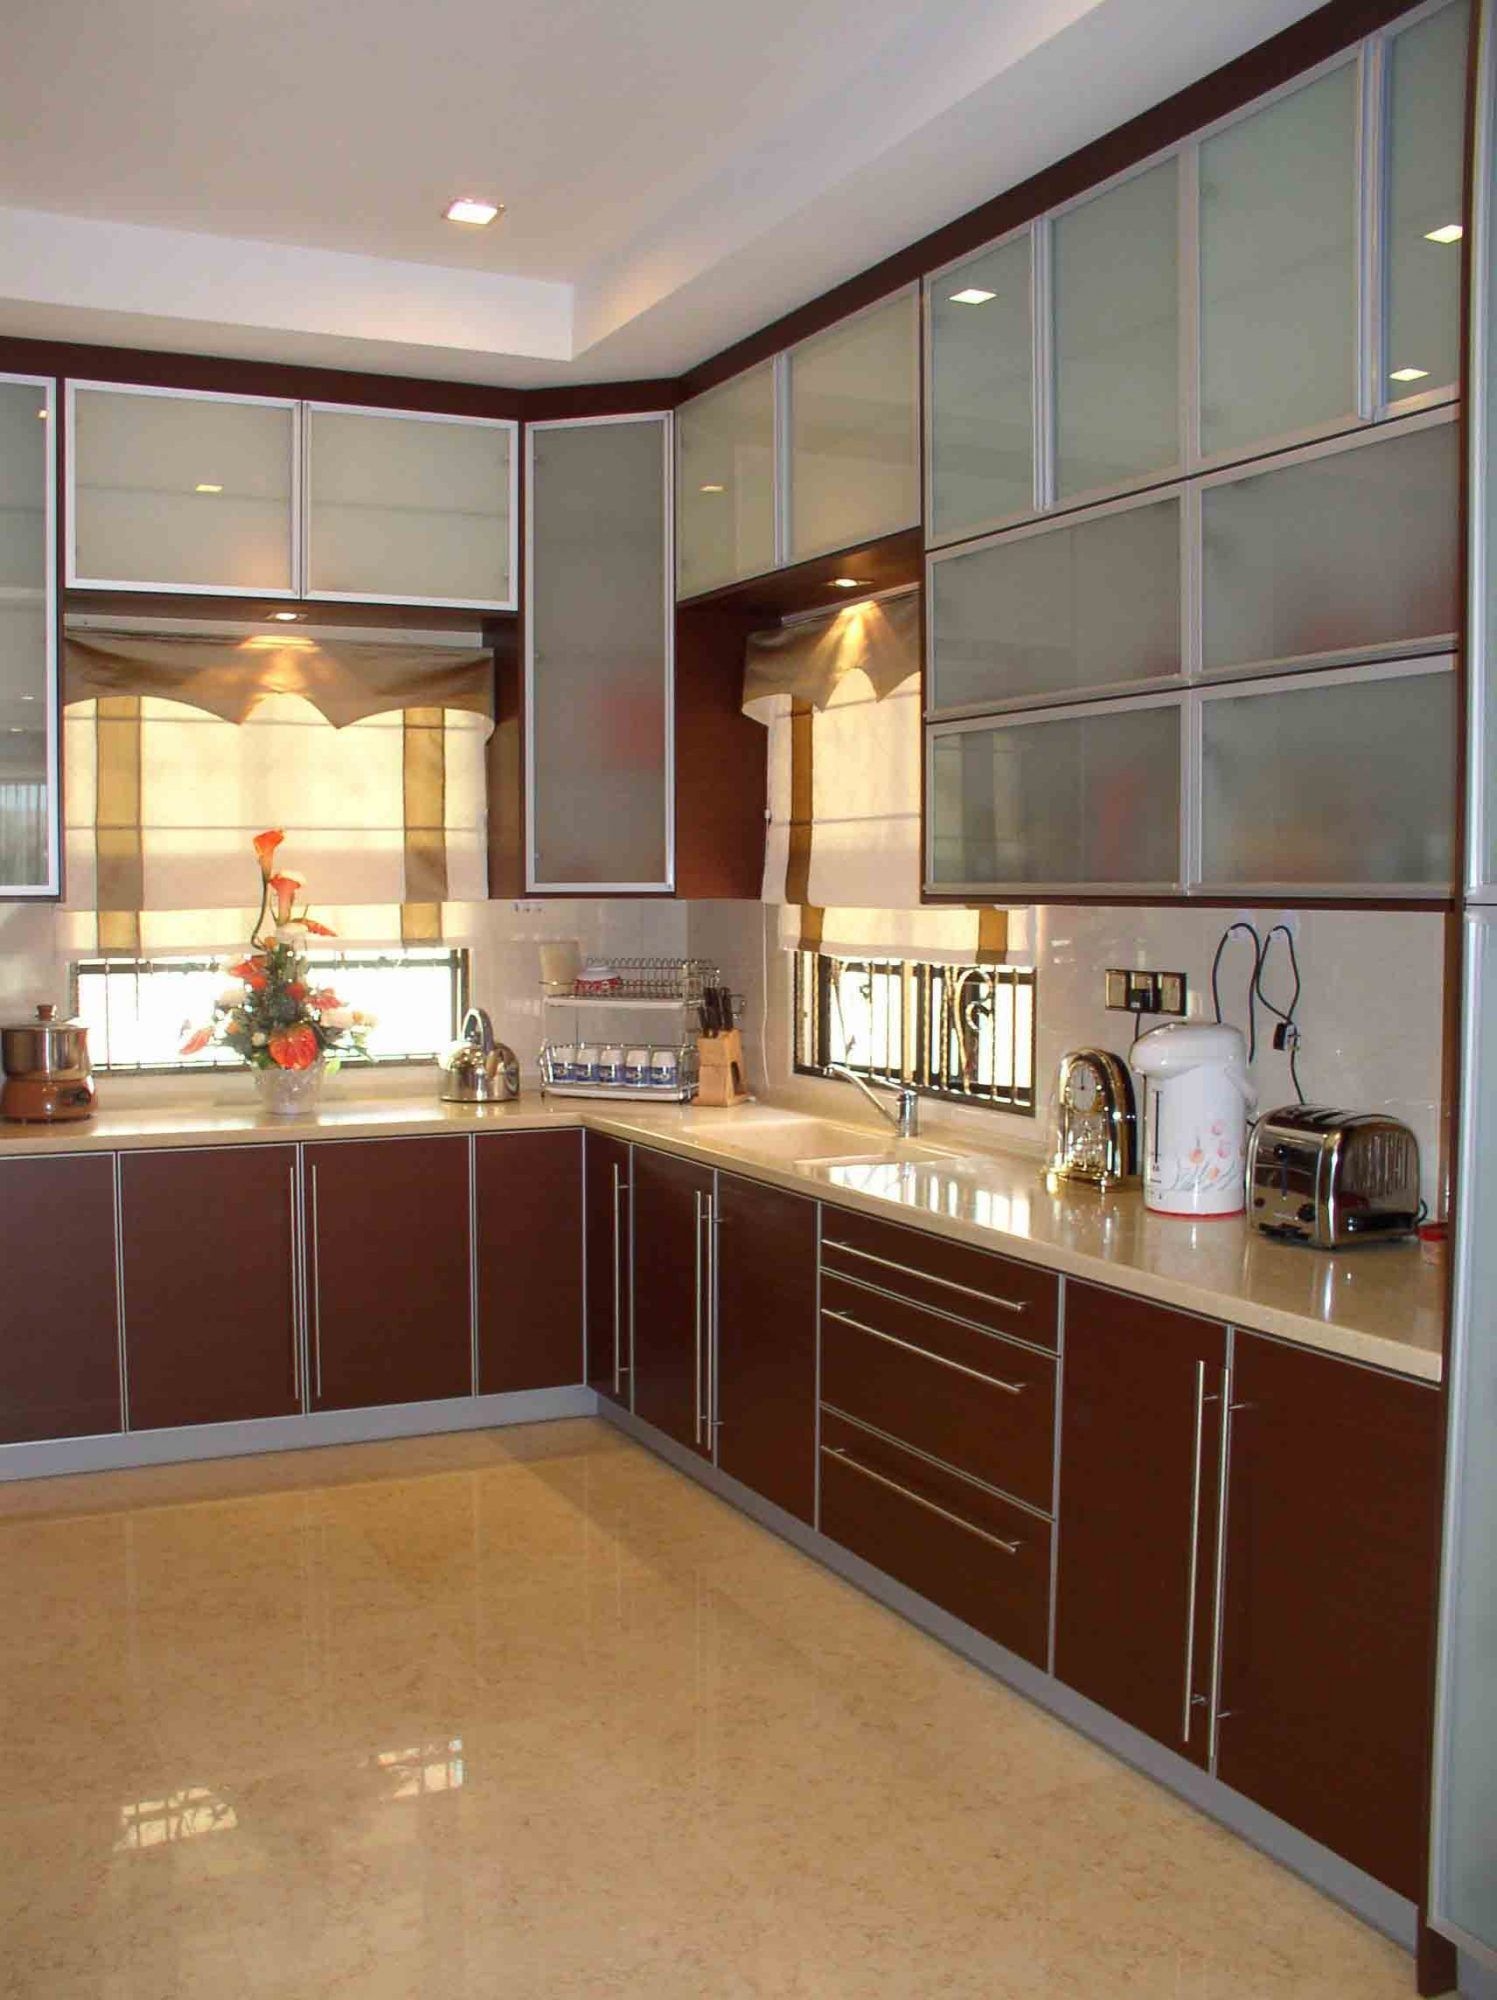 Kitchen Cabinet Design Tool Free Online 2021 Kitchen Cabinet Design Simple Kitchen Cabinets Kitchen Design Software